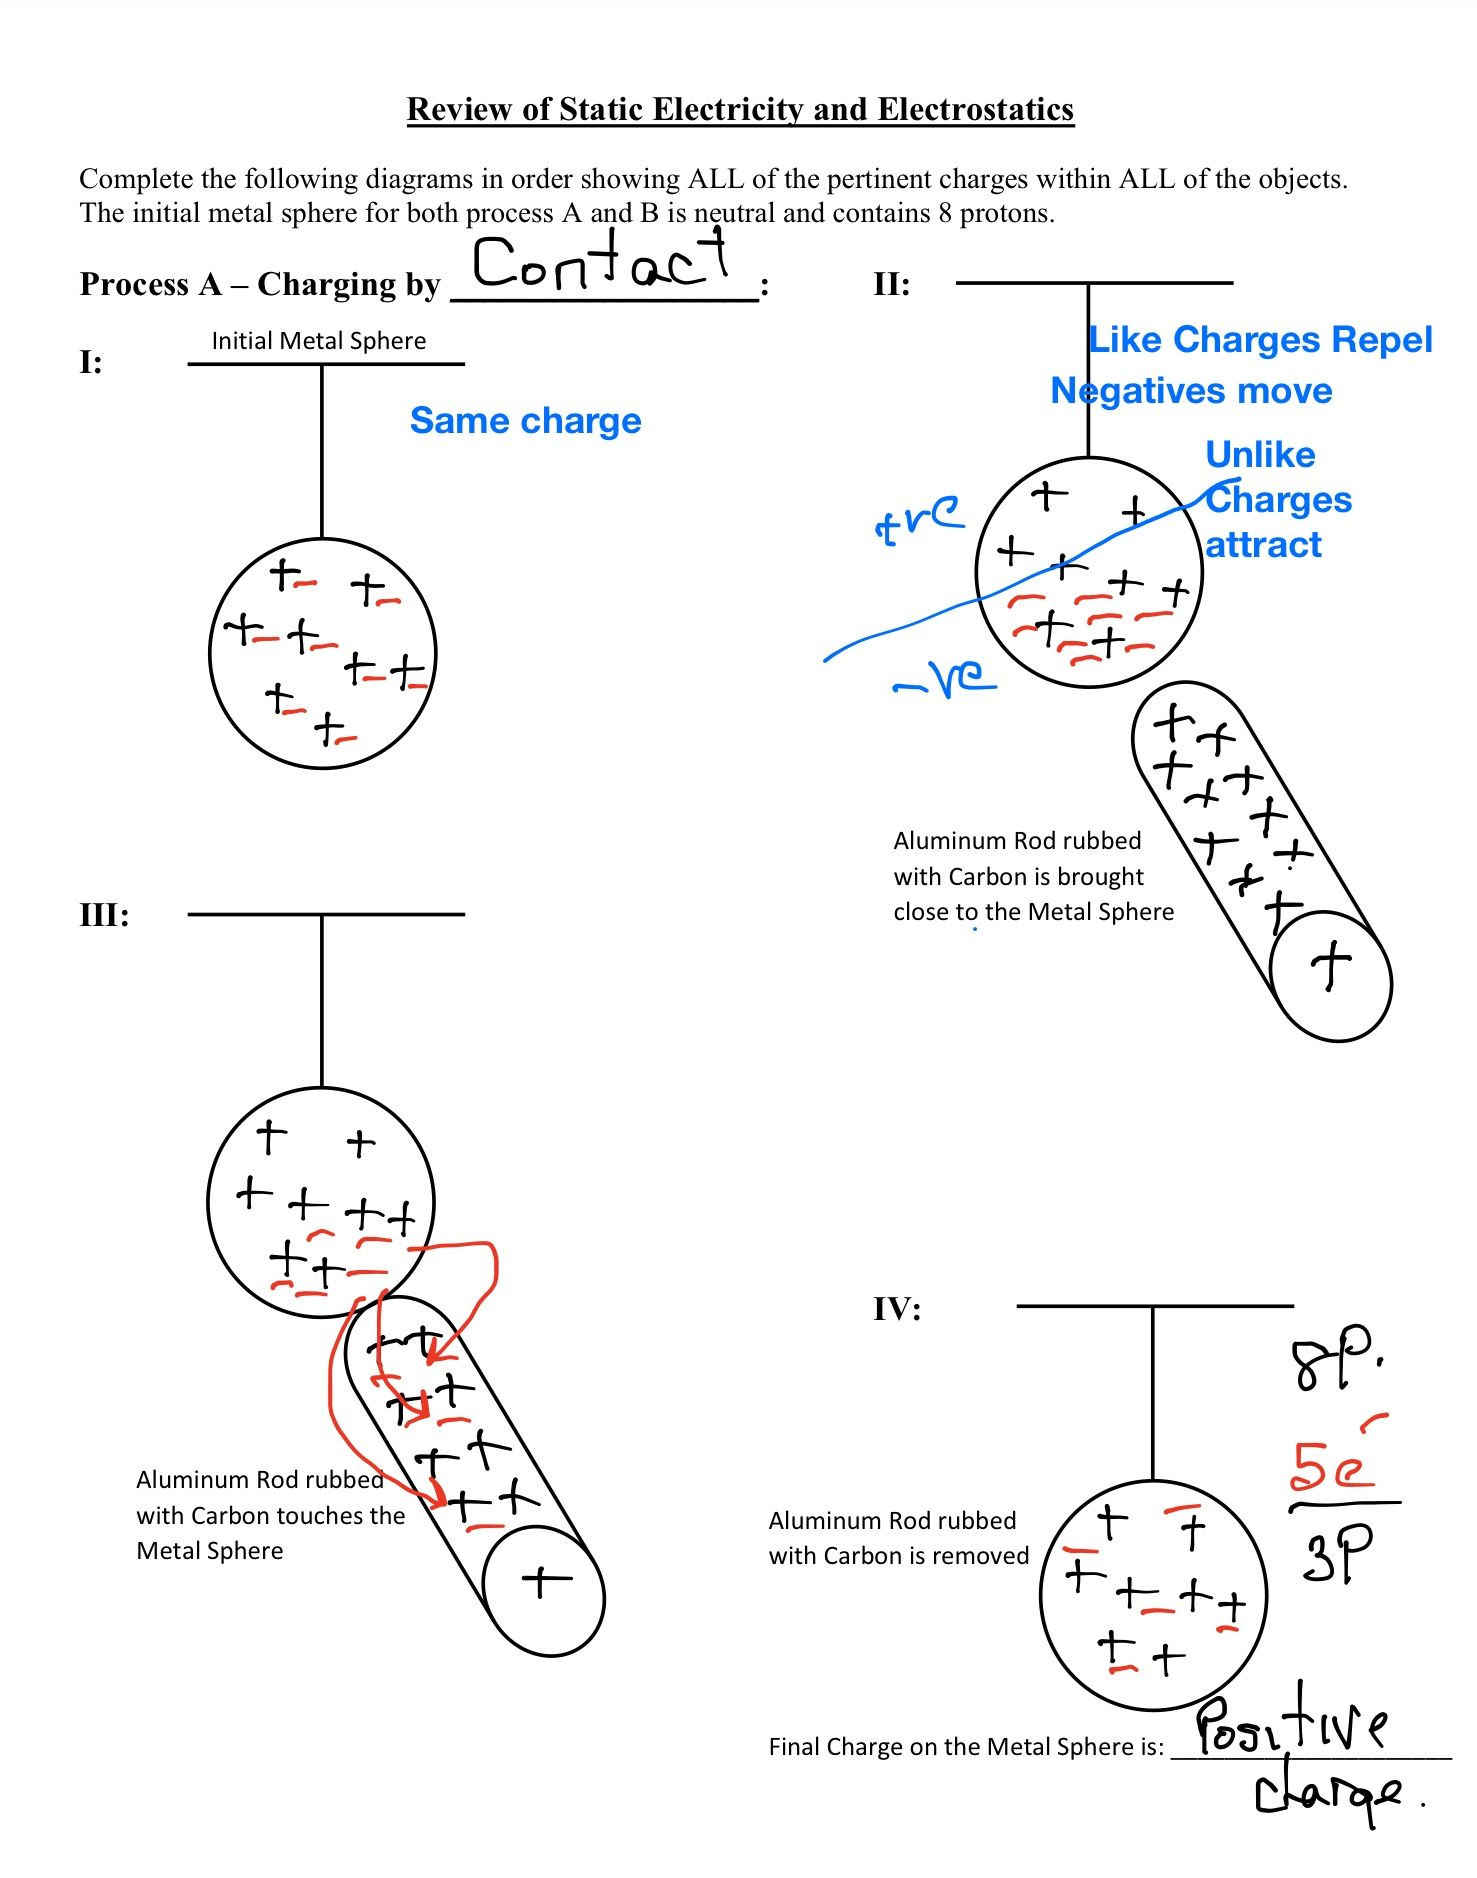 Review of Static Electricity and Electrostatics Worksheet